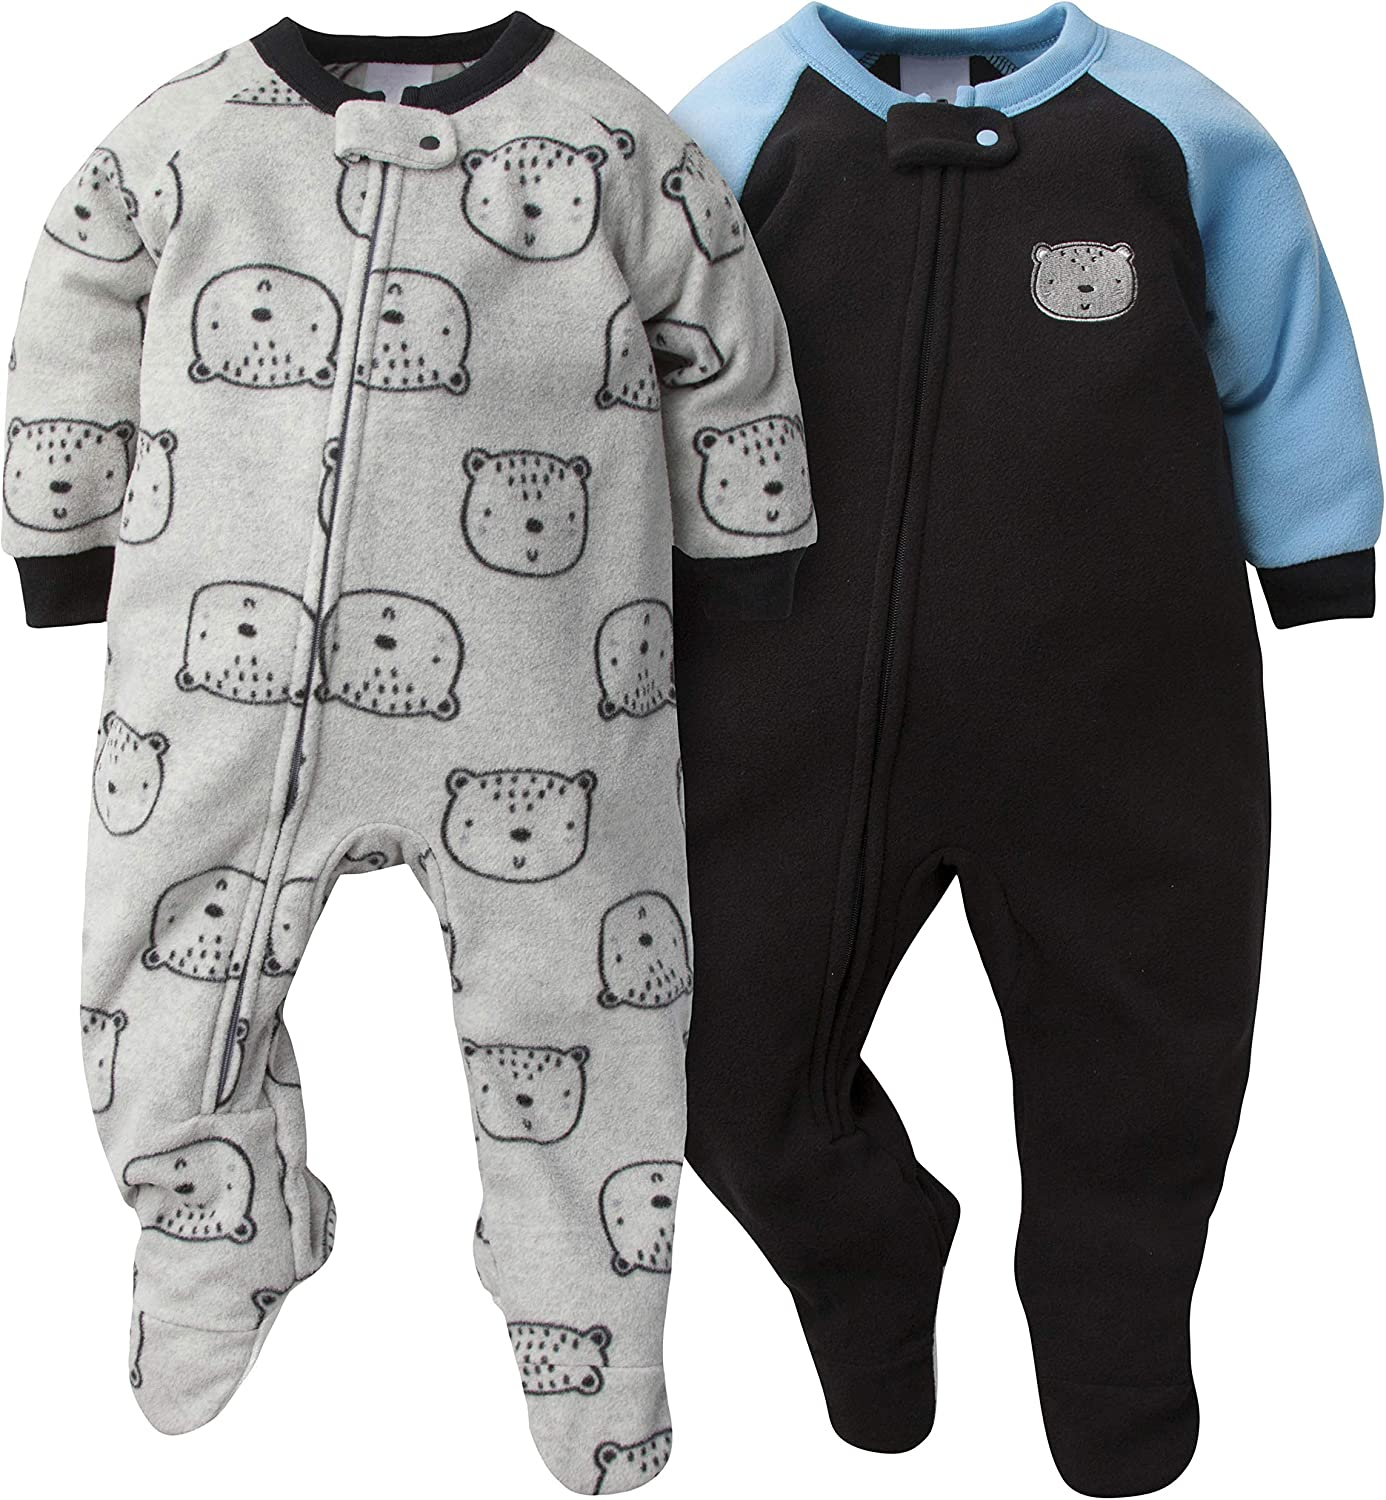 Gerber Baby-Boys 2-Pack Blanket Sleeper Infant-and-Toddler-Nightgowns